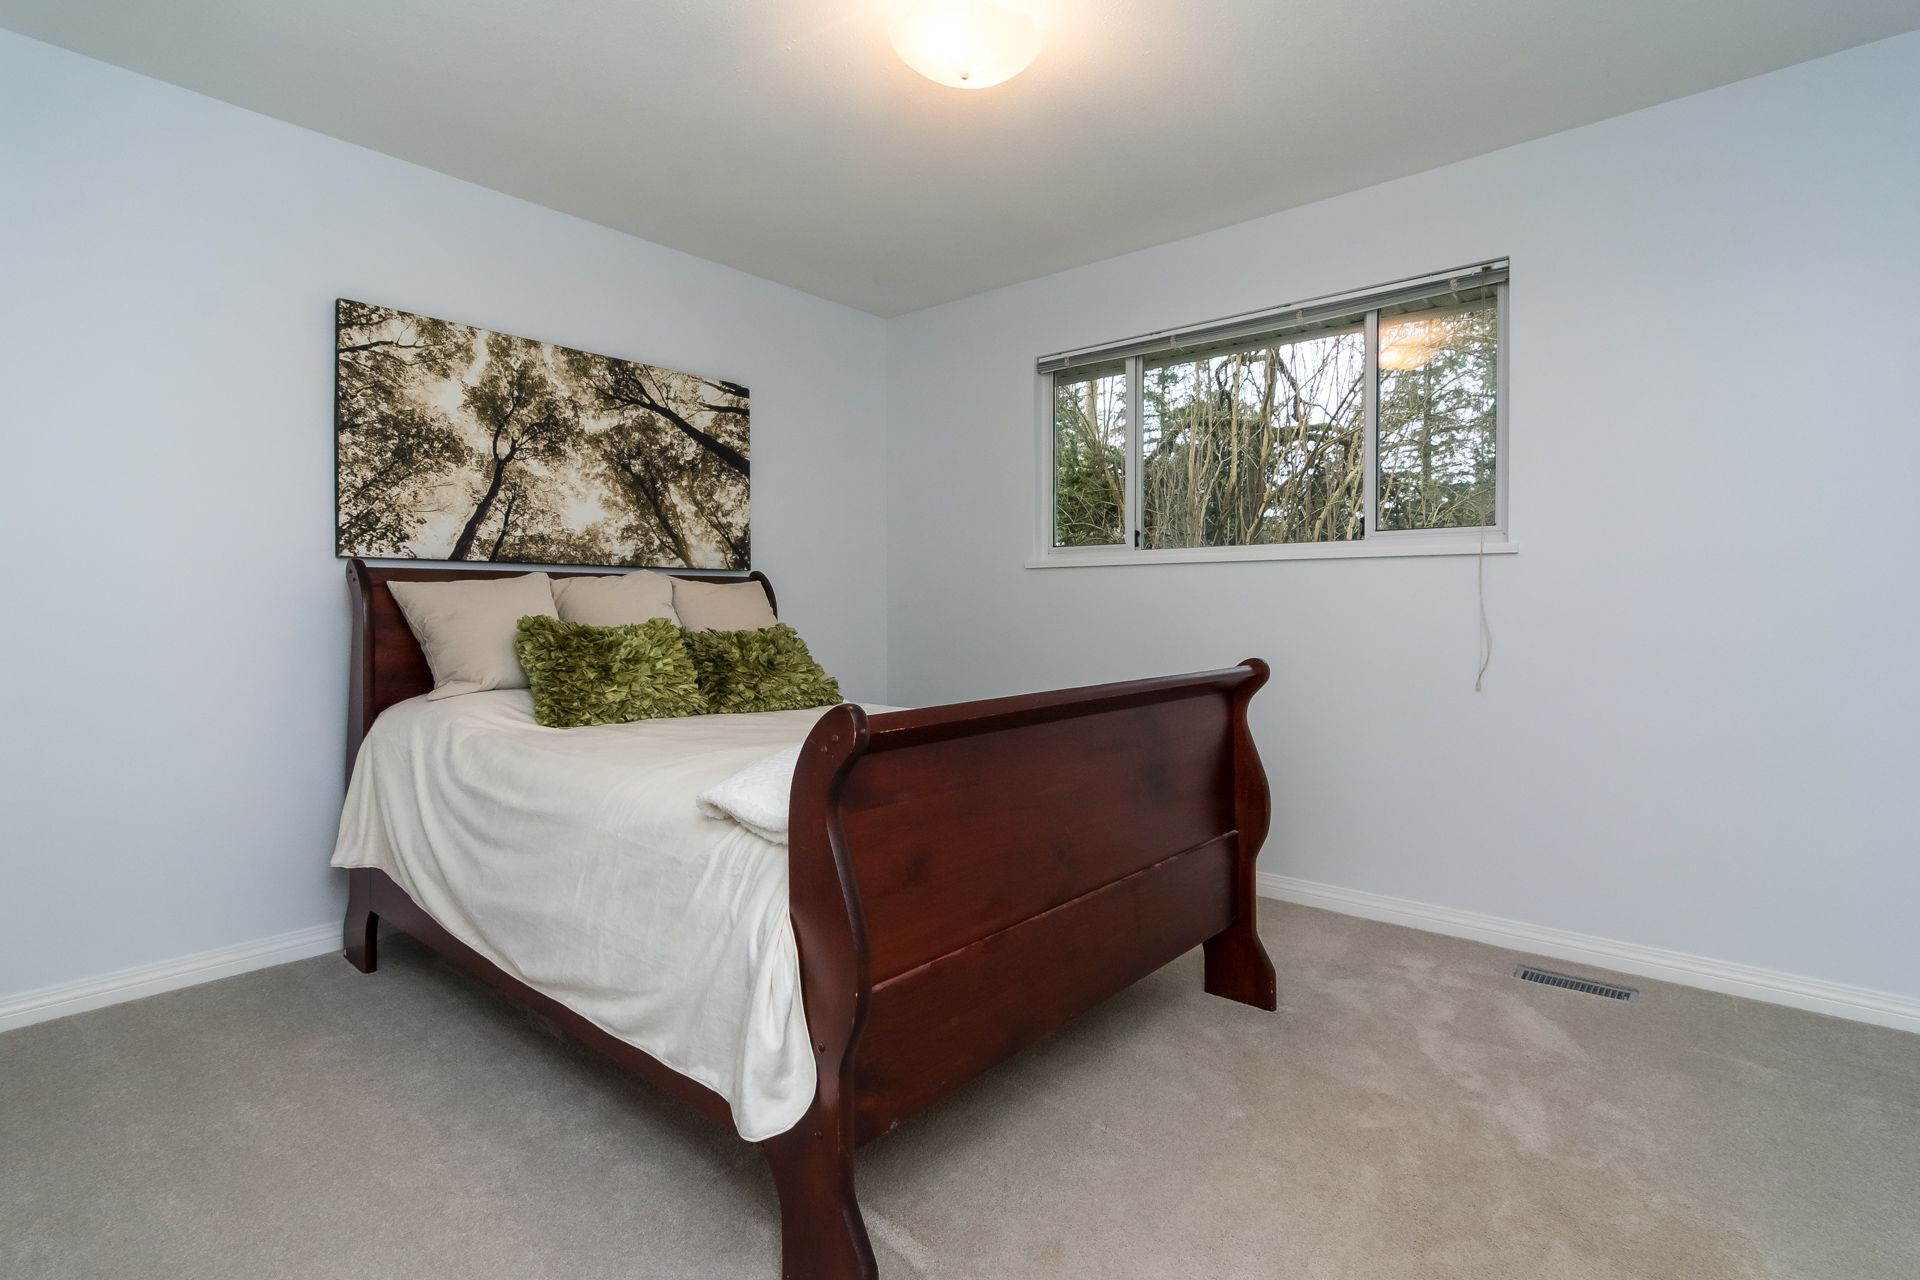 """Photo 20: Photos: 19941 37 Avenue in Langley: Brookswood Langley House for sale in """"Brookswood"""" : MLS®# R2240474"""